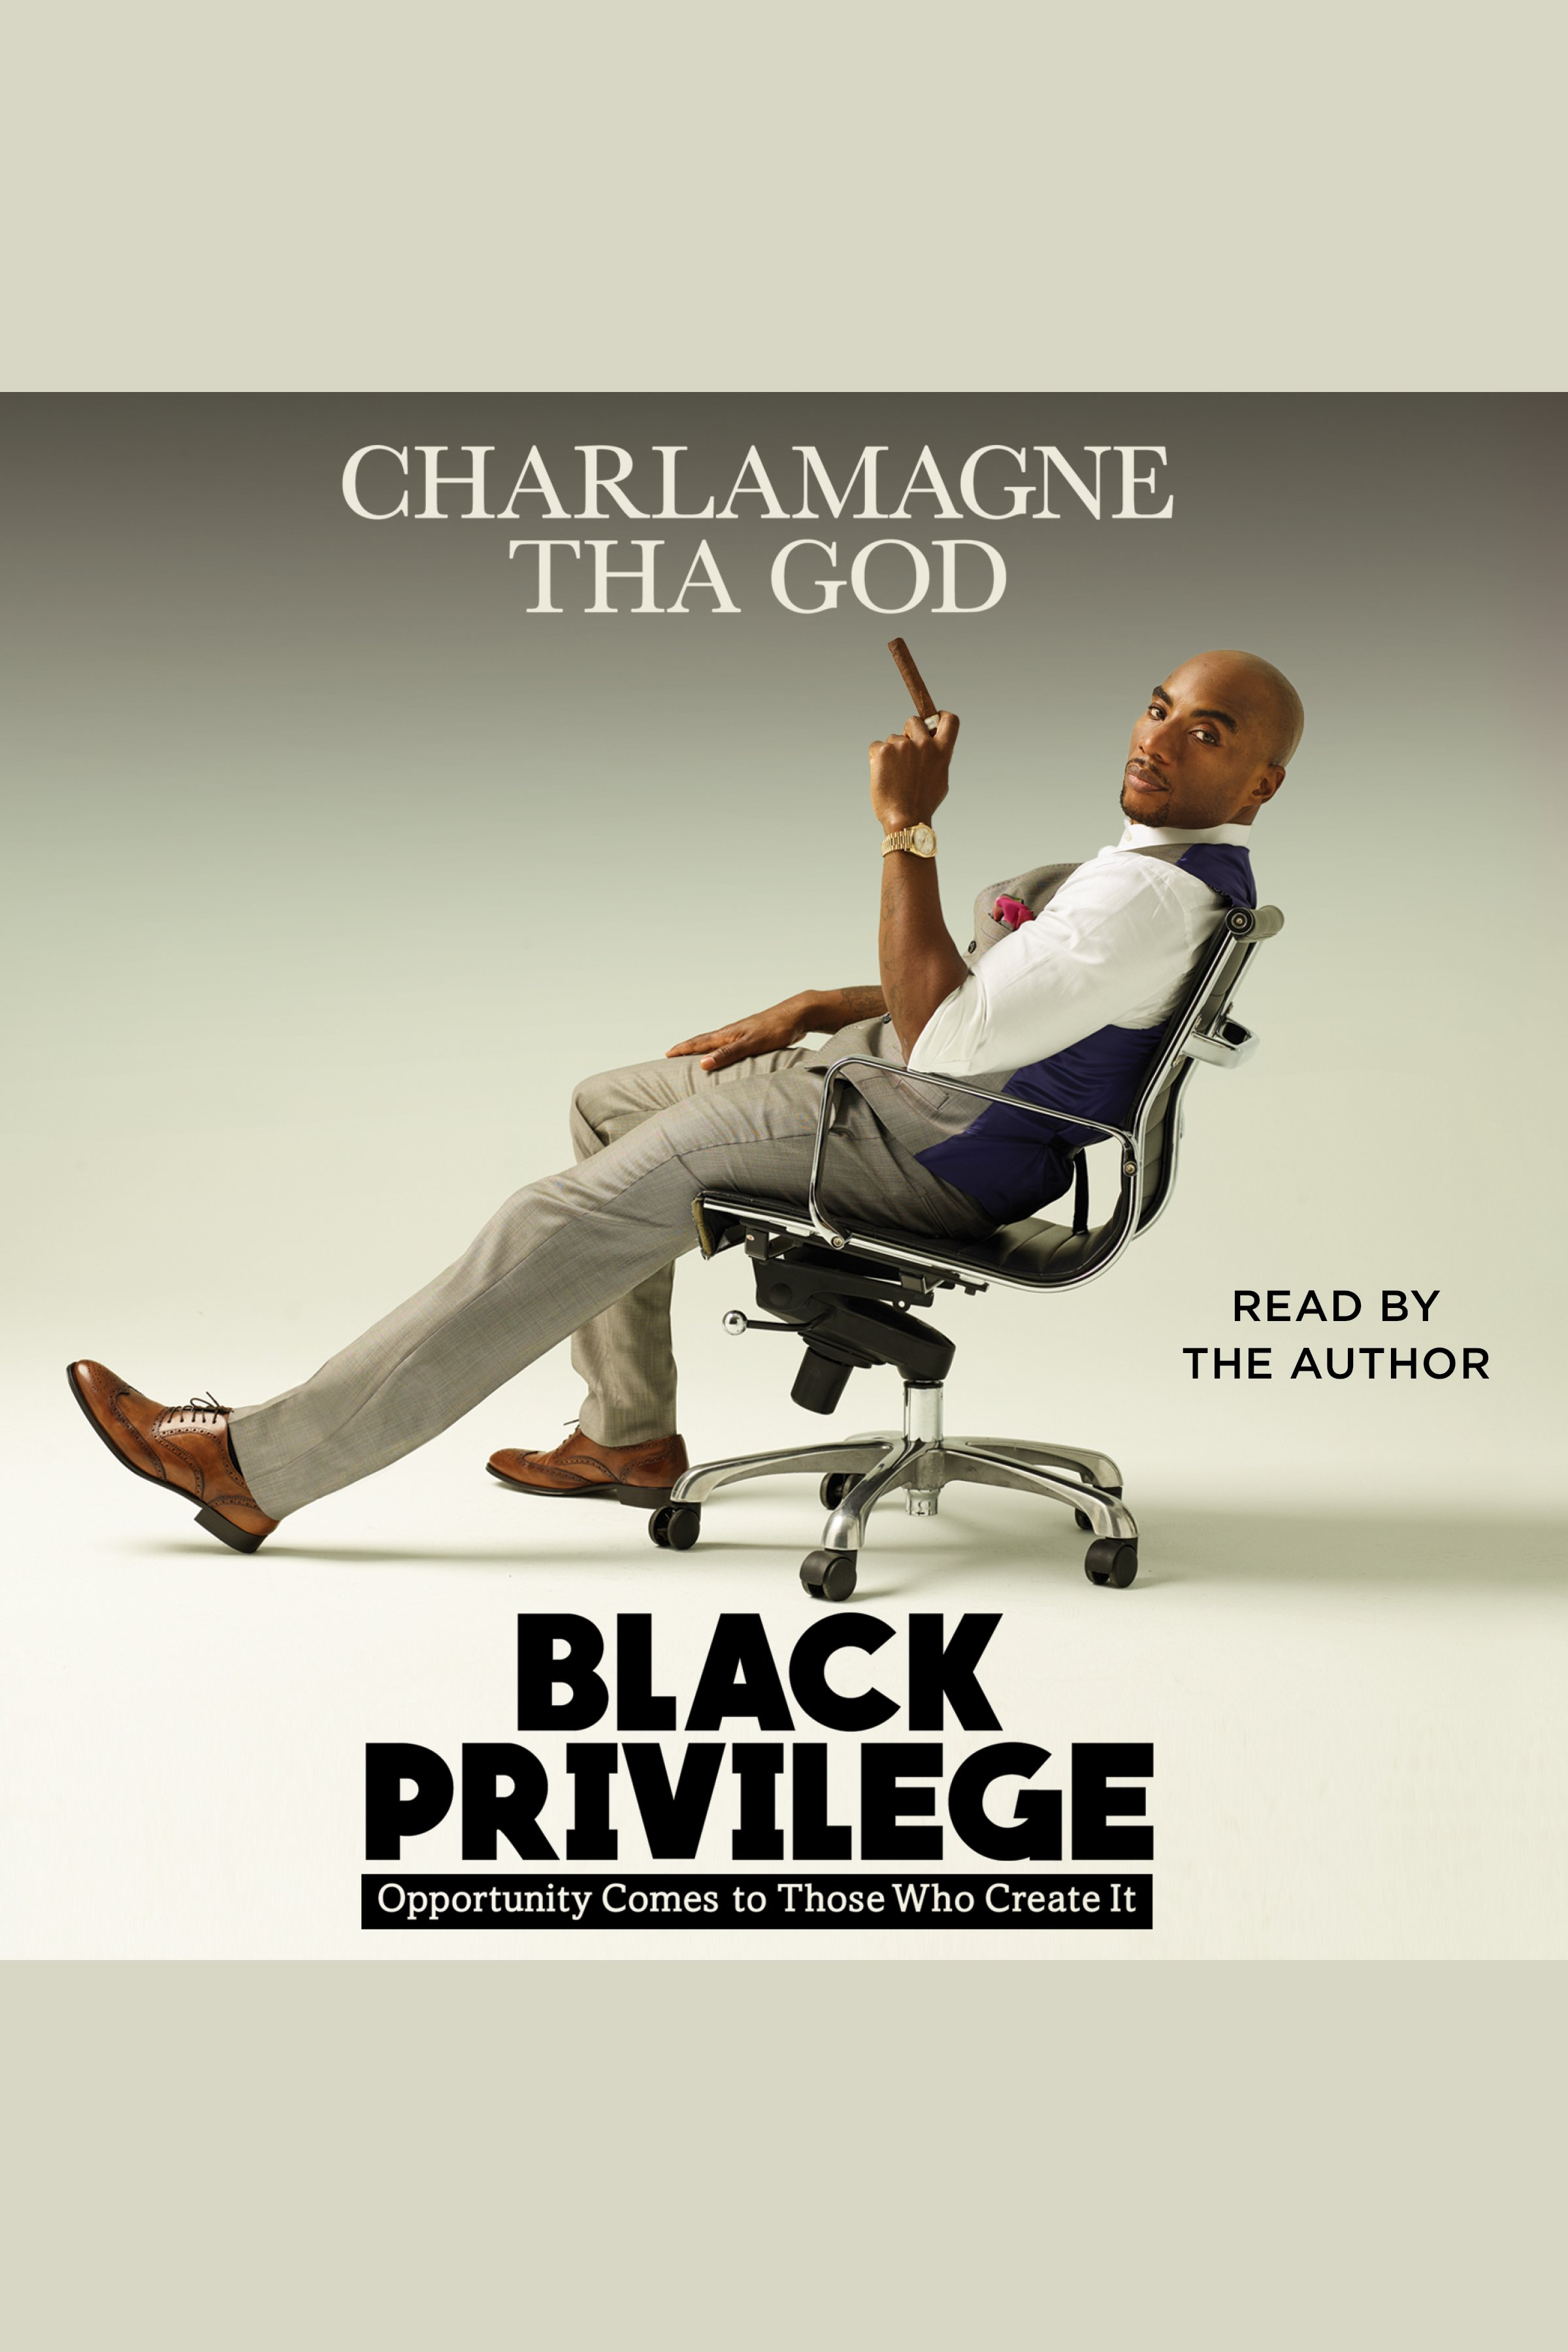 Black Privilege [AUDIO EBOOK] Opportunity Comes to Those Who Create It